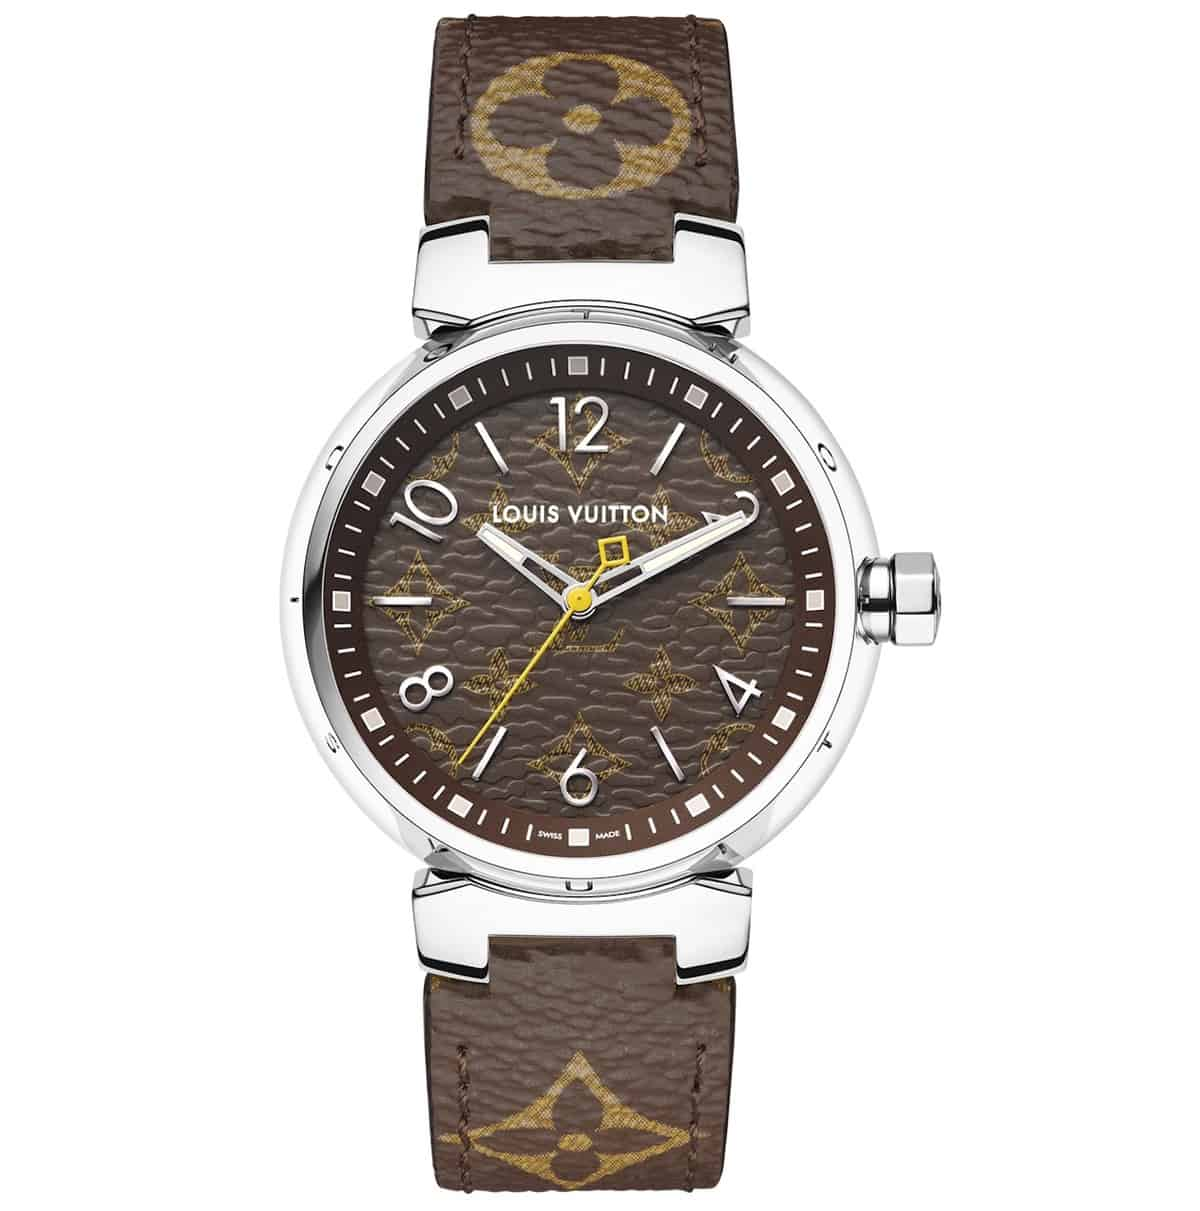 Louis Vuitton Tambour Icons Collection Watches 6